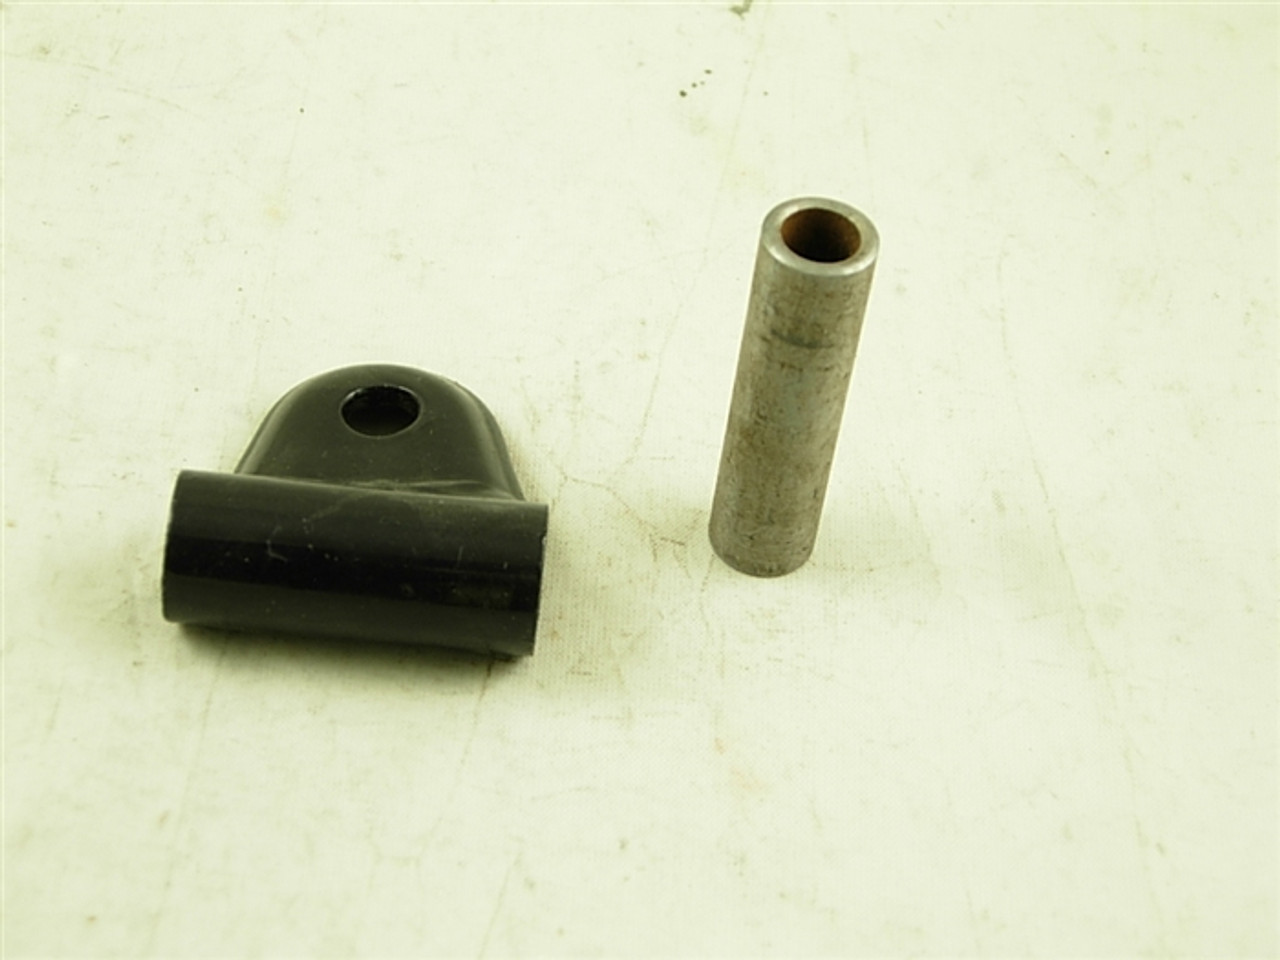 SPINDLE TIE/HOLDER 11092-A61-12